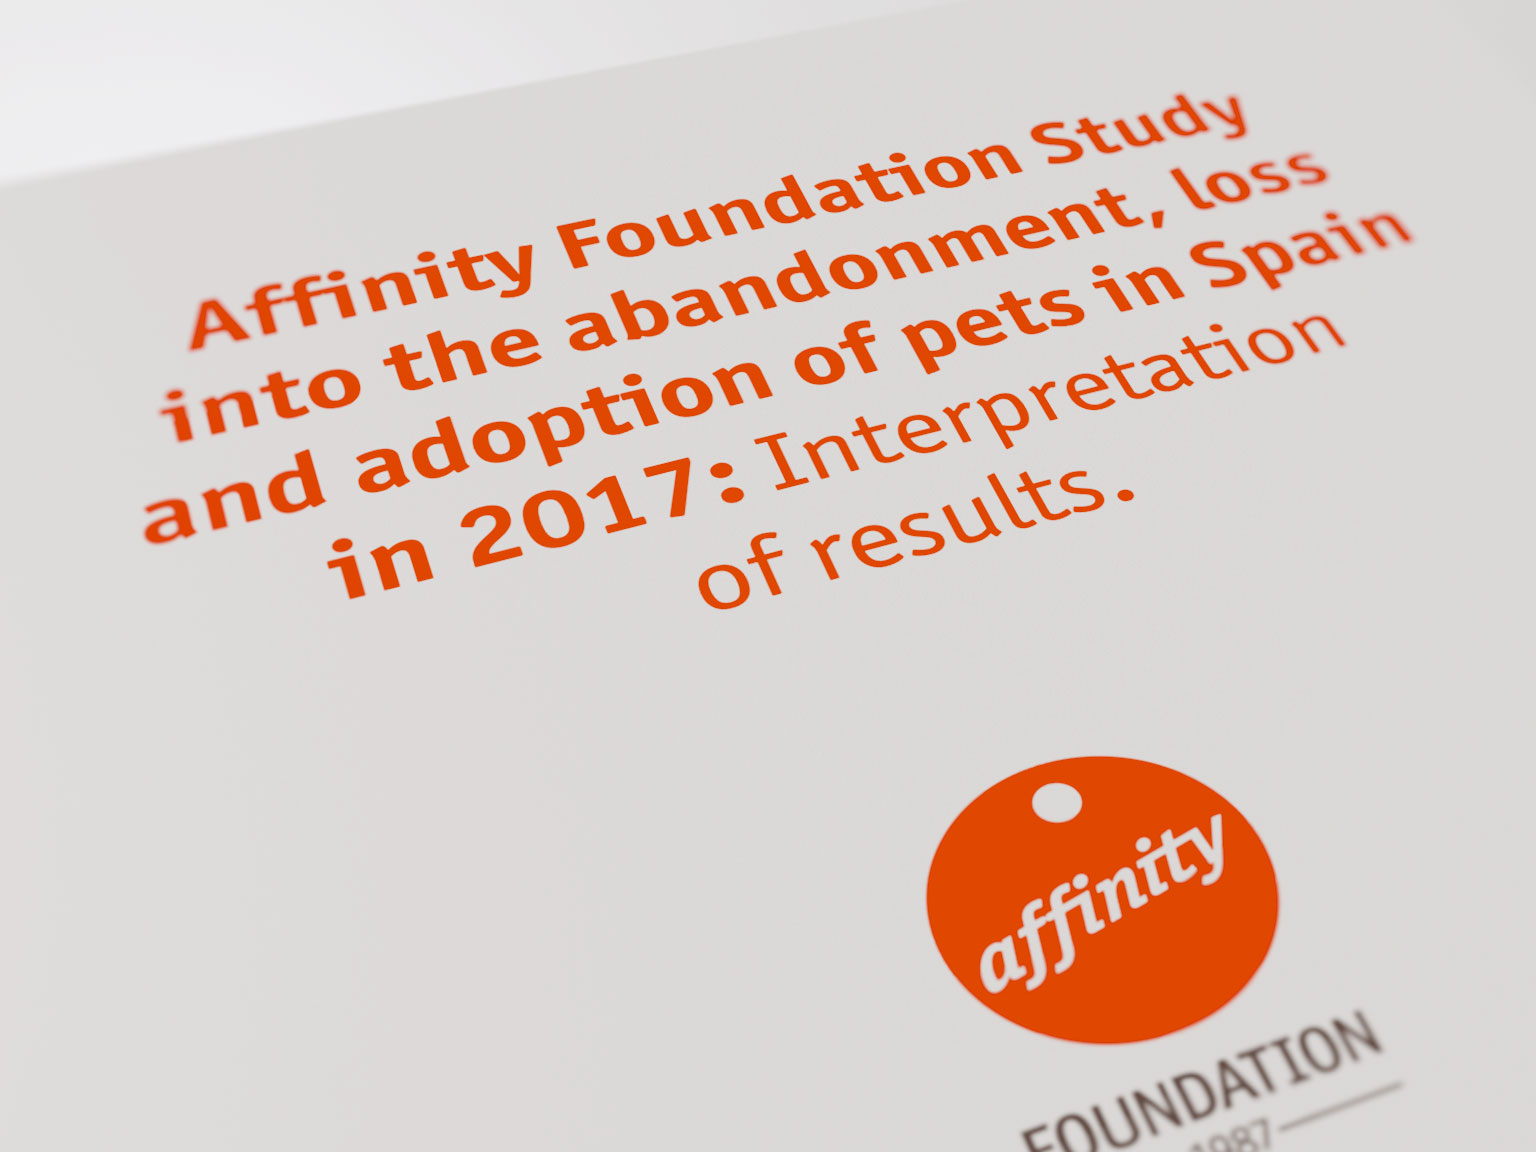 Affinity Foundation Study into the abandonment, loss and adoption of pets in Spain in 2017: Interpretation of results.